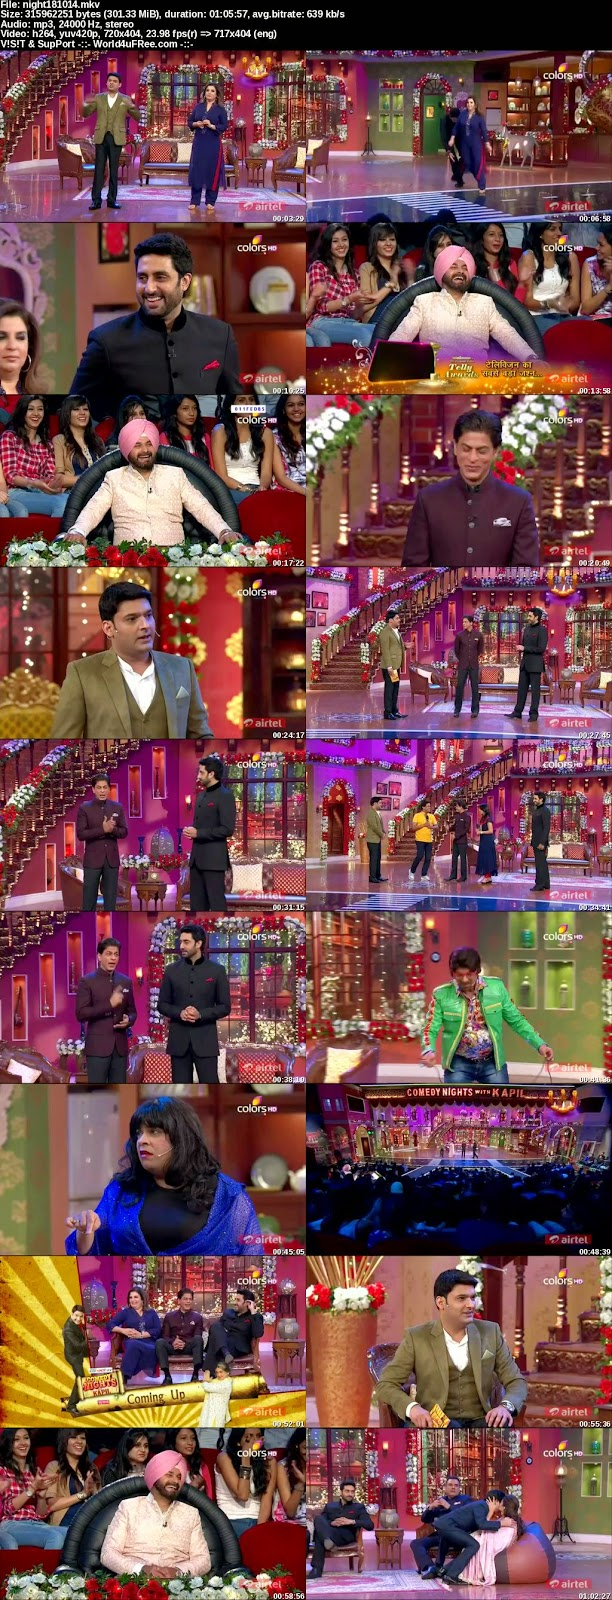 Comedy Nights With Kapil 18th October 2014 Full Episode at moviesmella.com